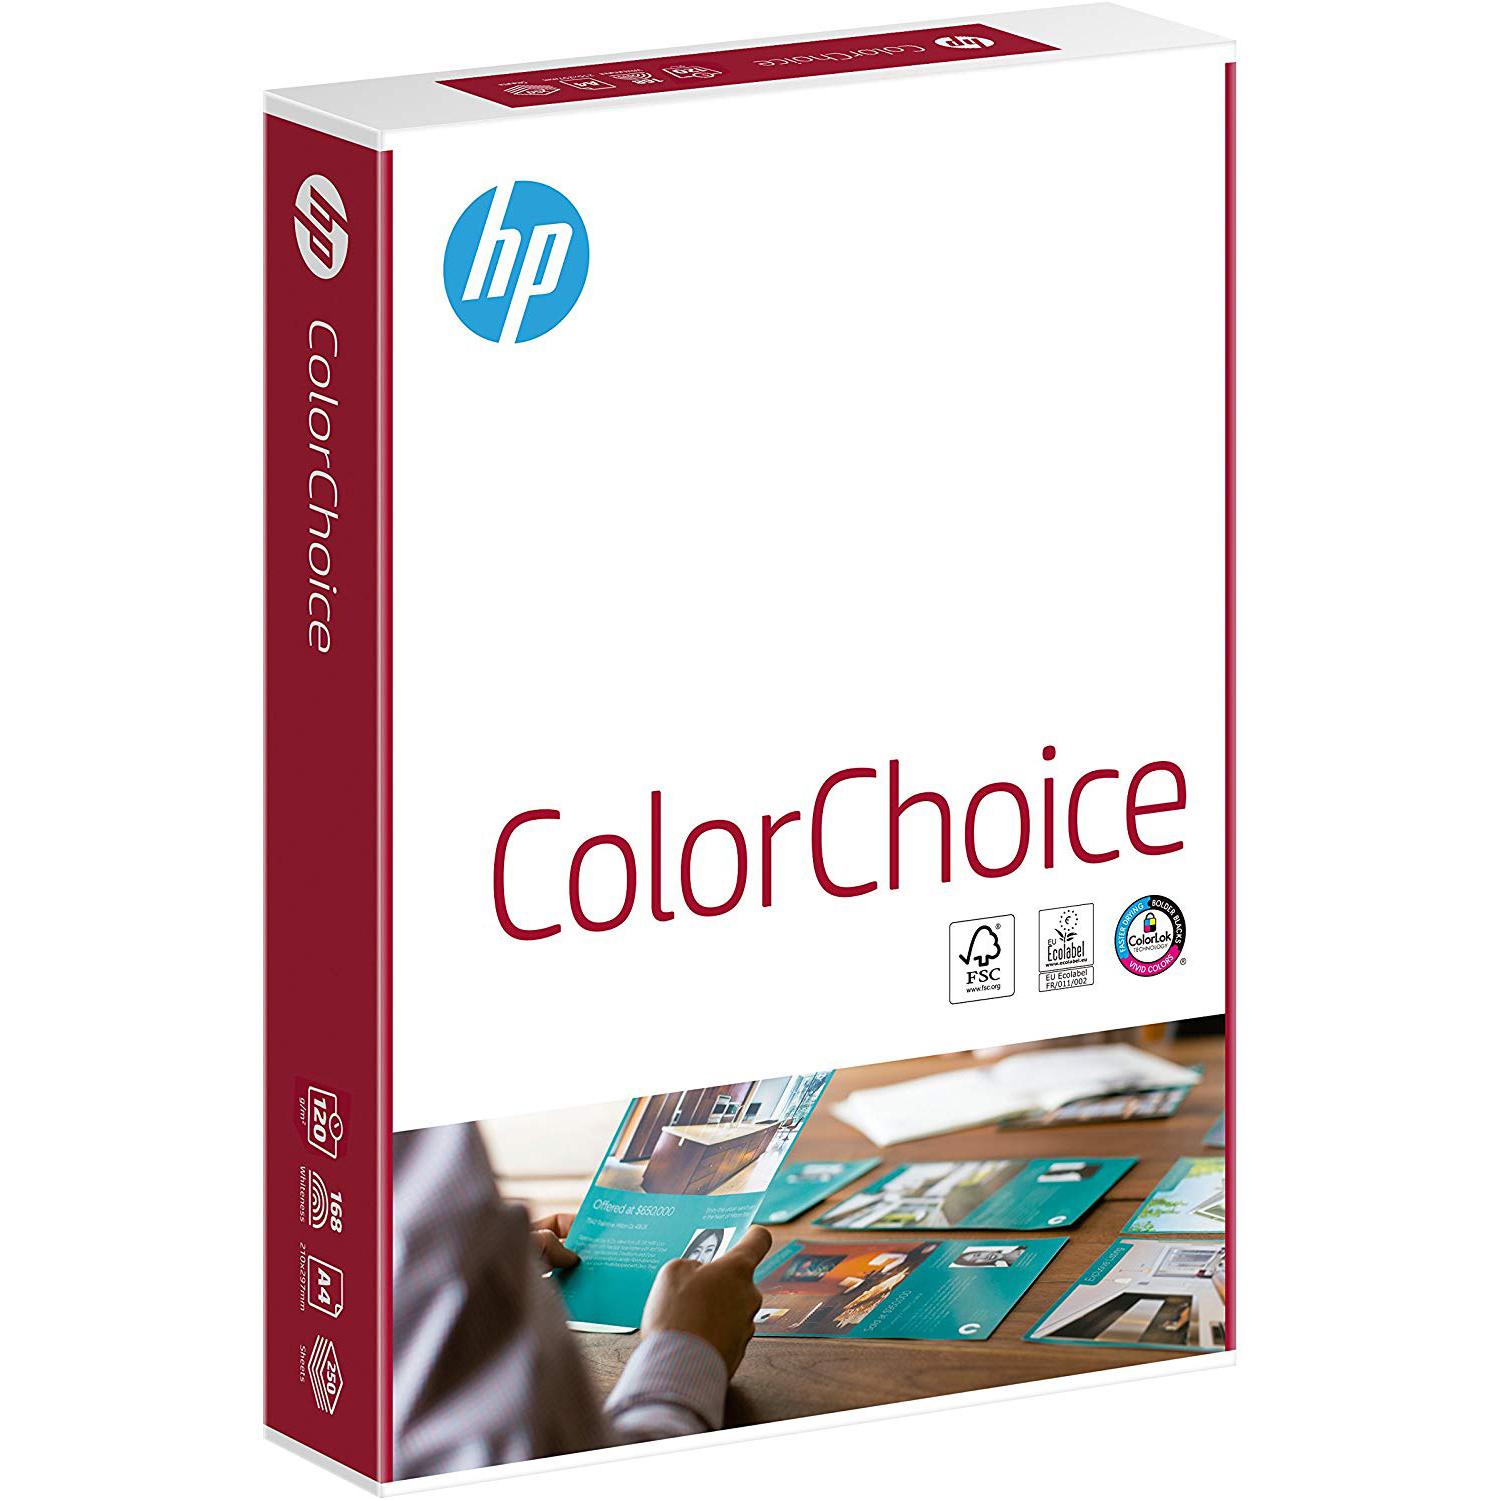 Original HP 120gsm A4 Colour Laser Paper - 250 Sheets (CHP753 94292)